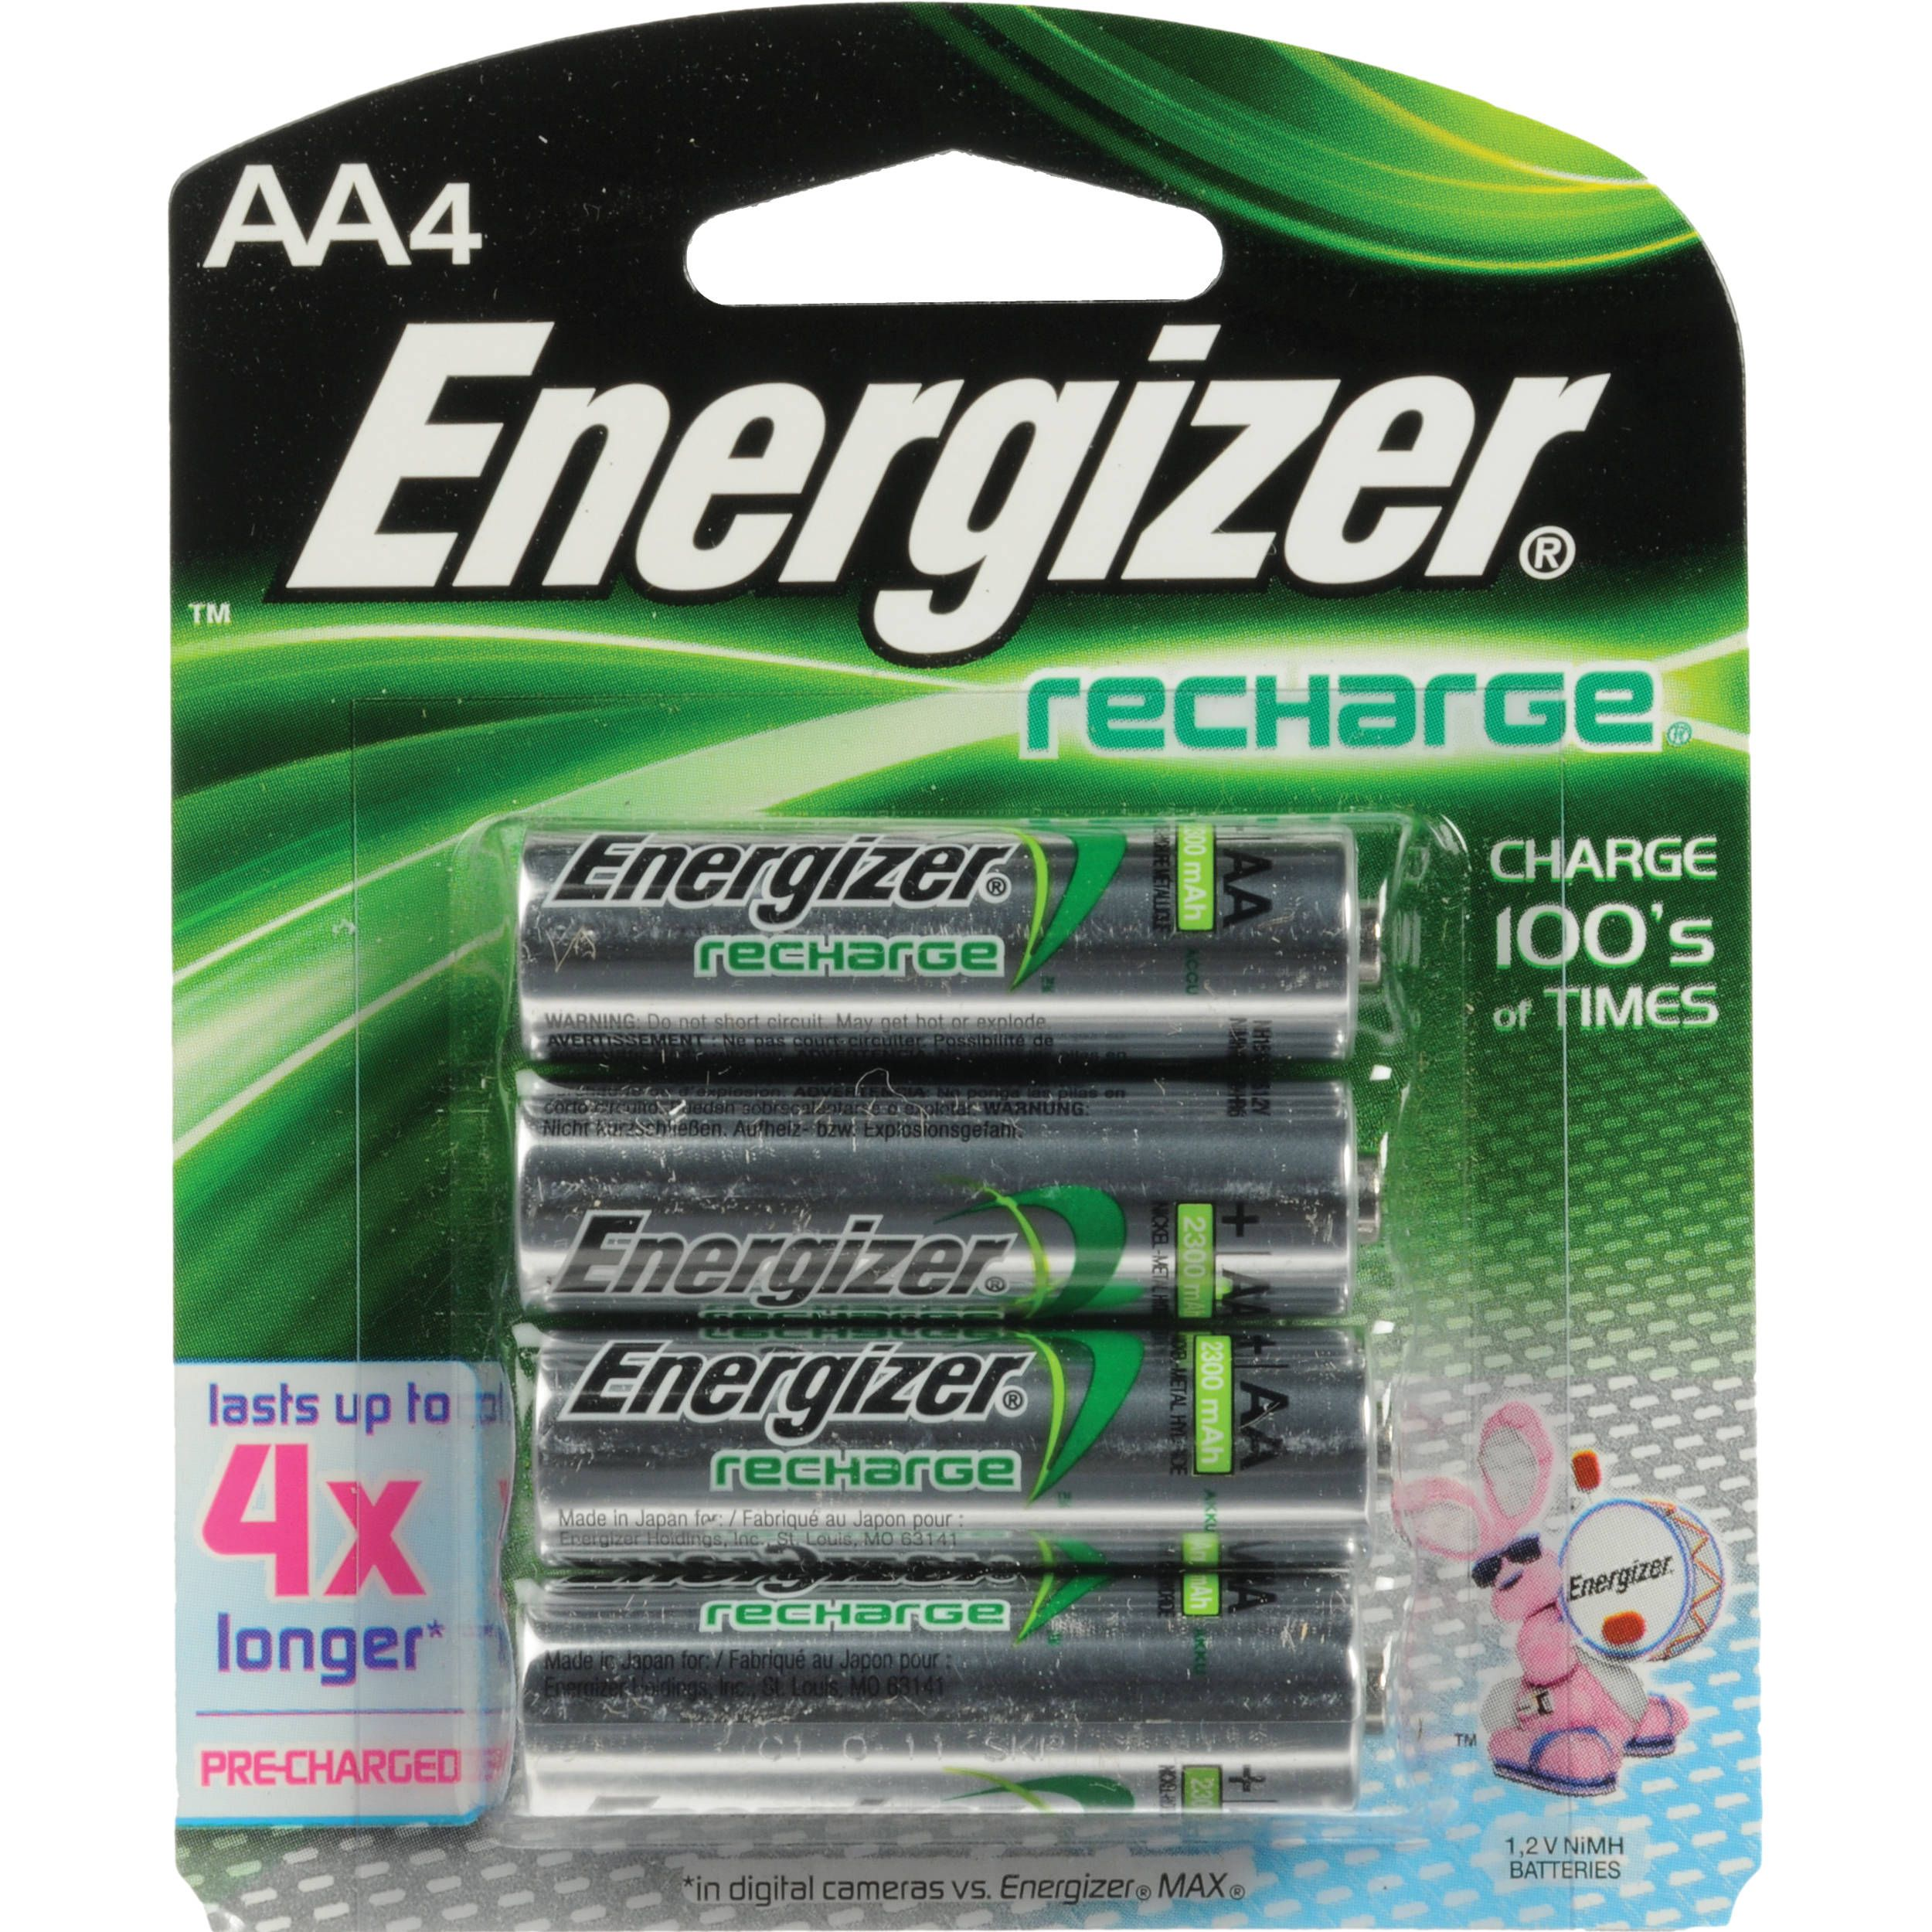 Pin By Buyesy On Best Aaa Rechargeable Batterie Reviews Energizer Rechargeable Batteries Recharge